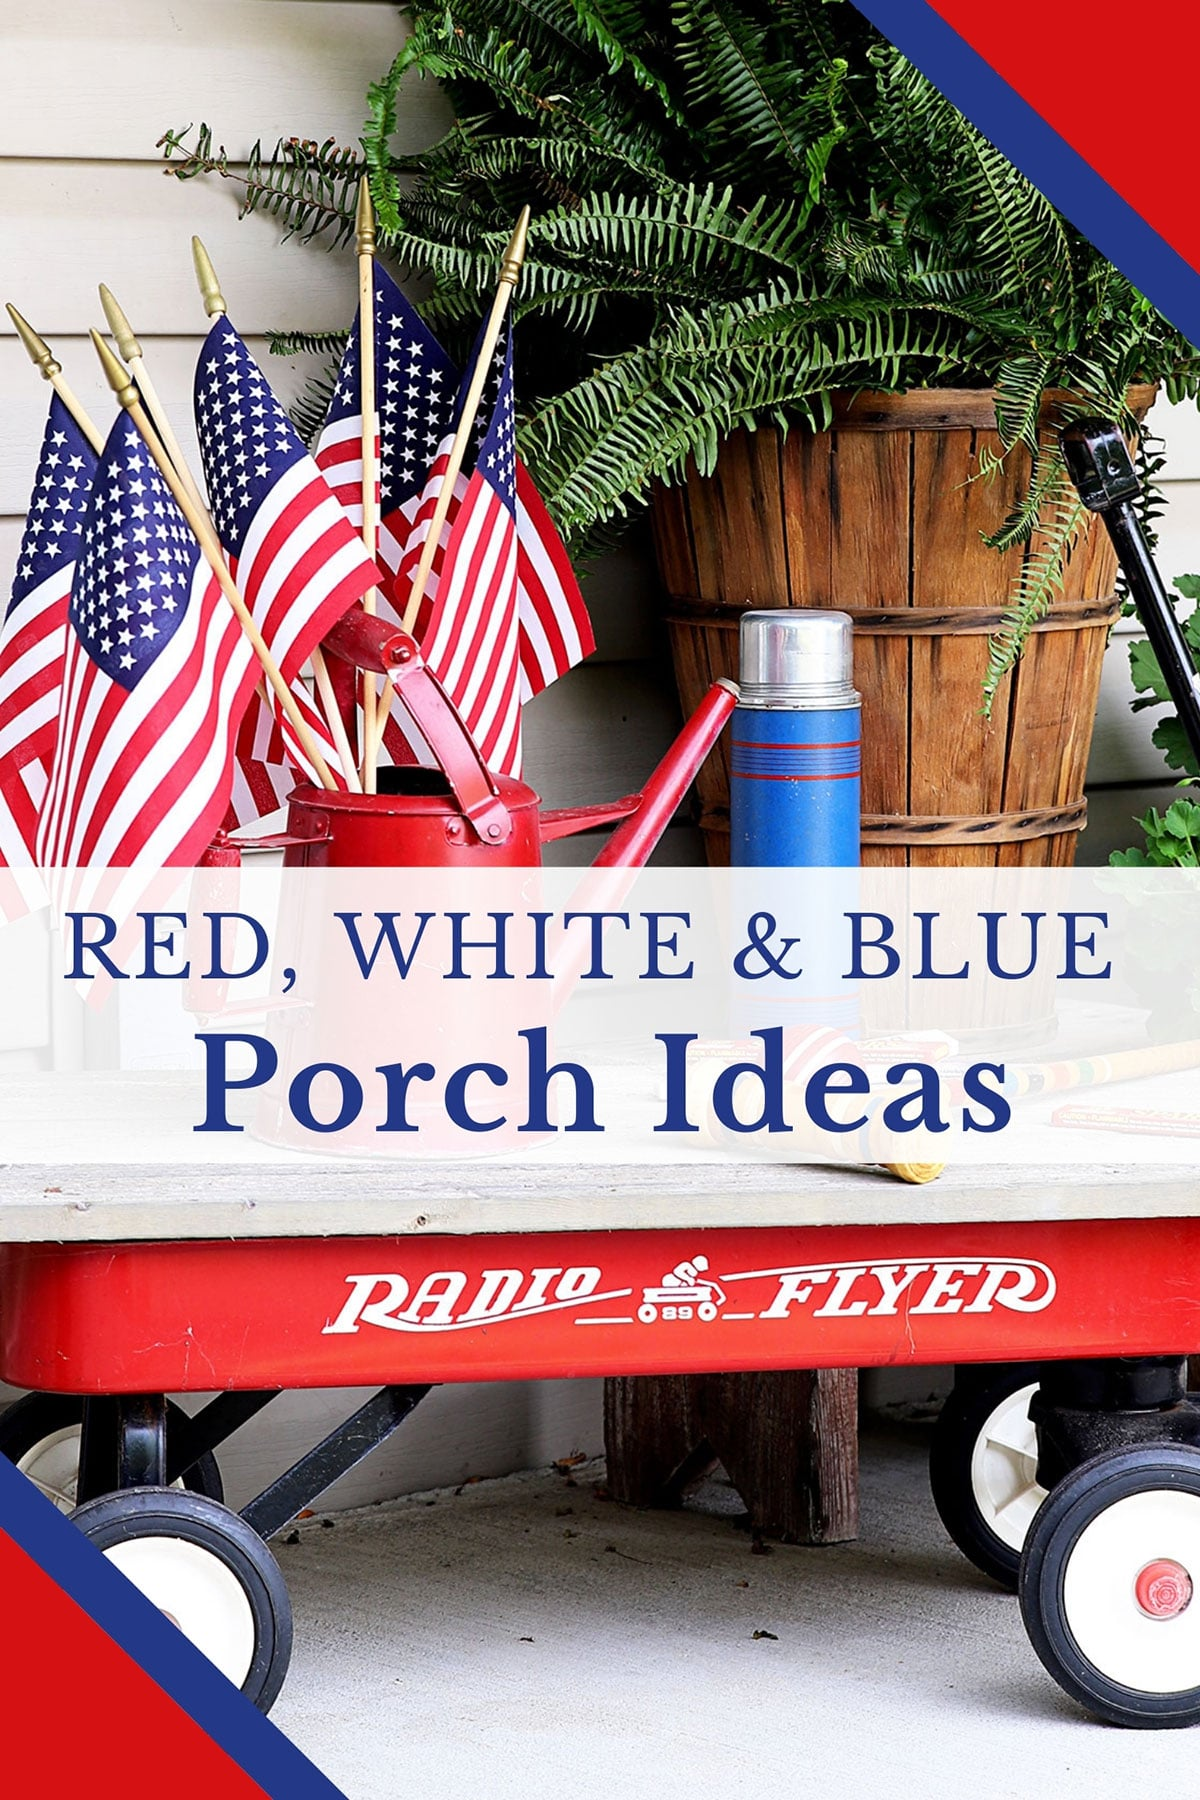 Quick and EASY patriotic porch decor ideas to decorate your home for the 4th Of July, Labor Day or Memorial Day.